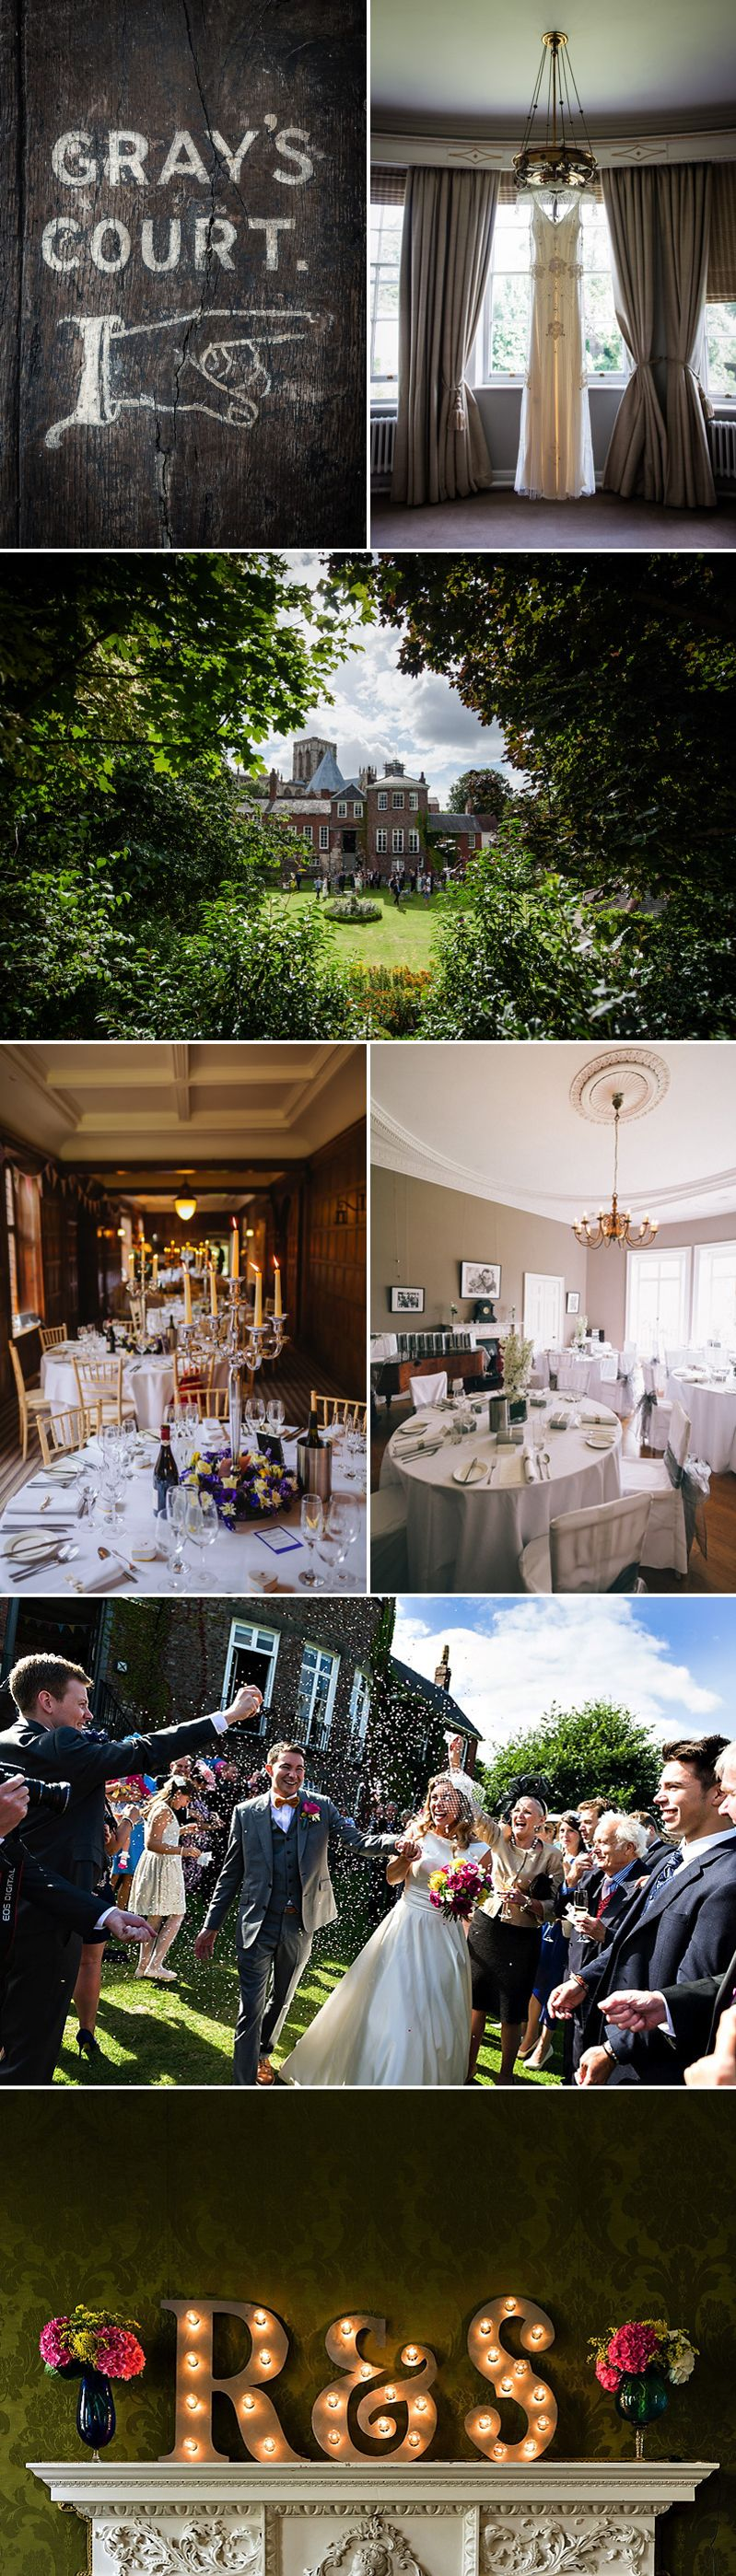 Backgrounds diy wedding yorkshire for iphone hd pics northern monk brewery venue in leeds west uk